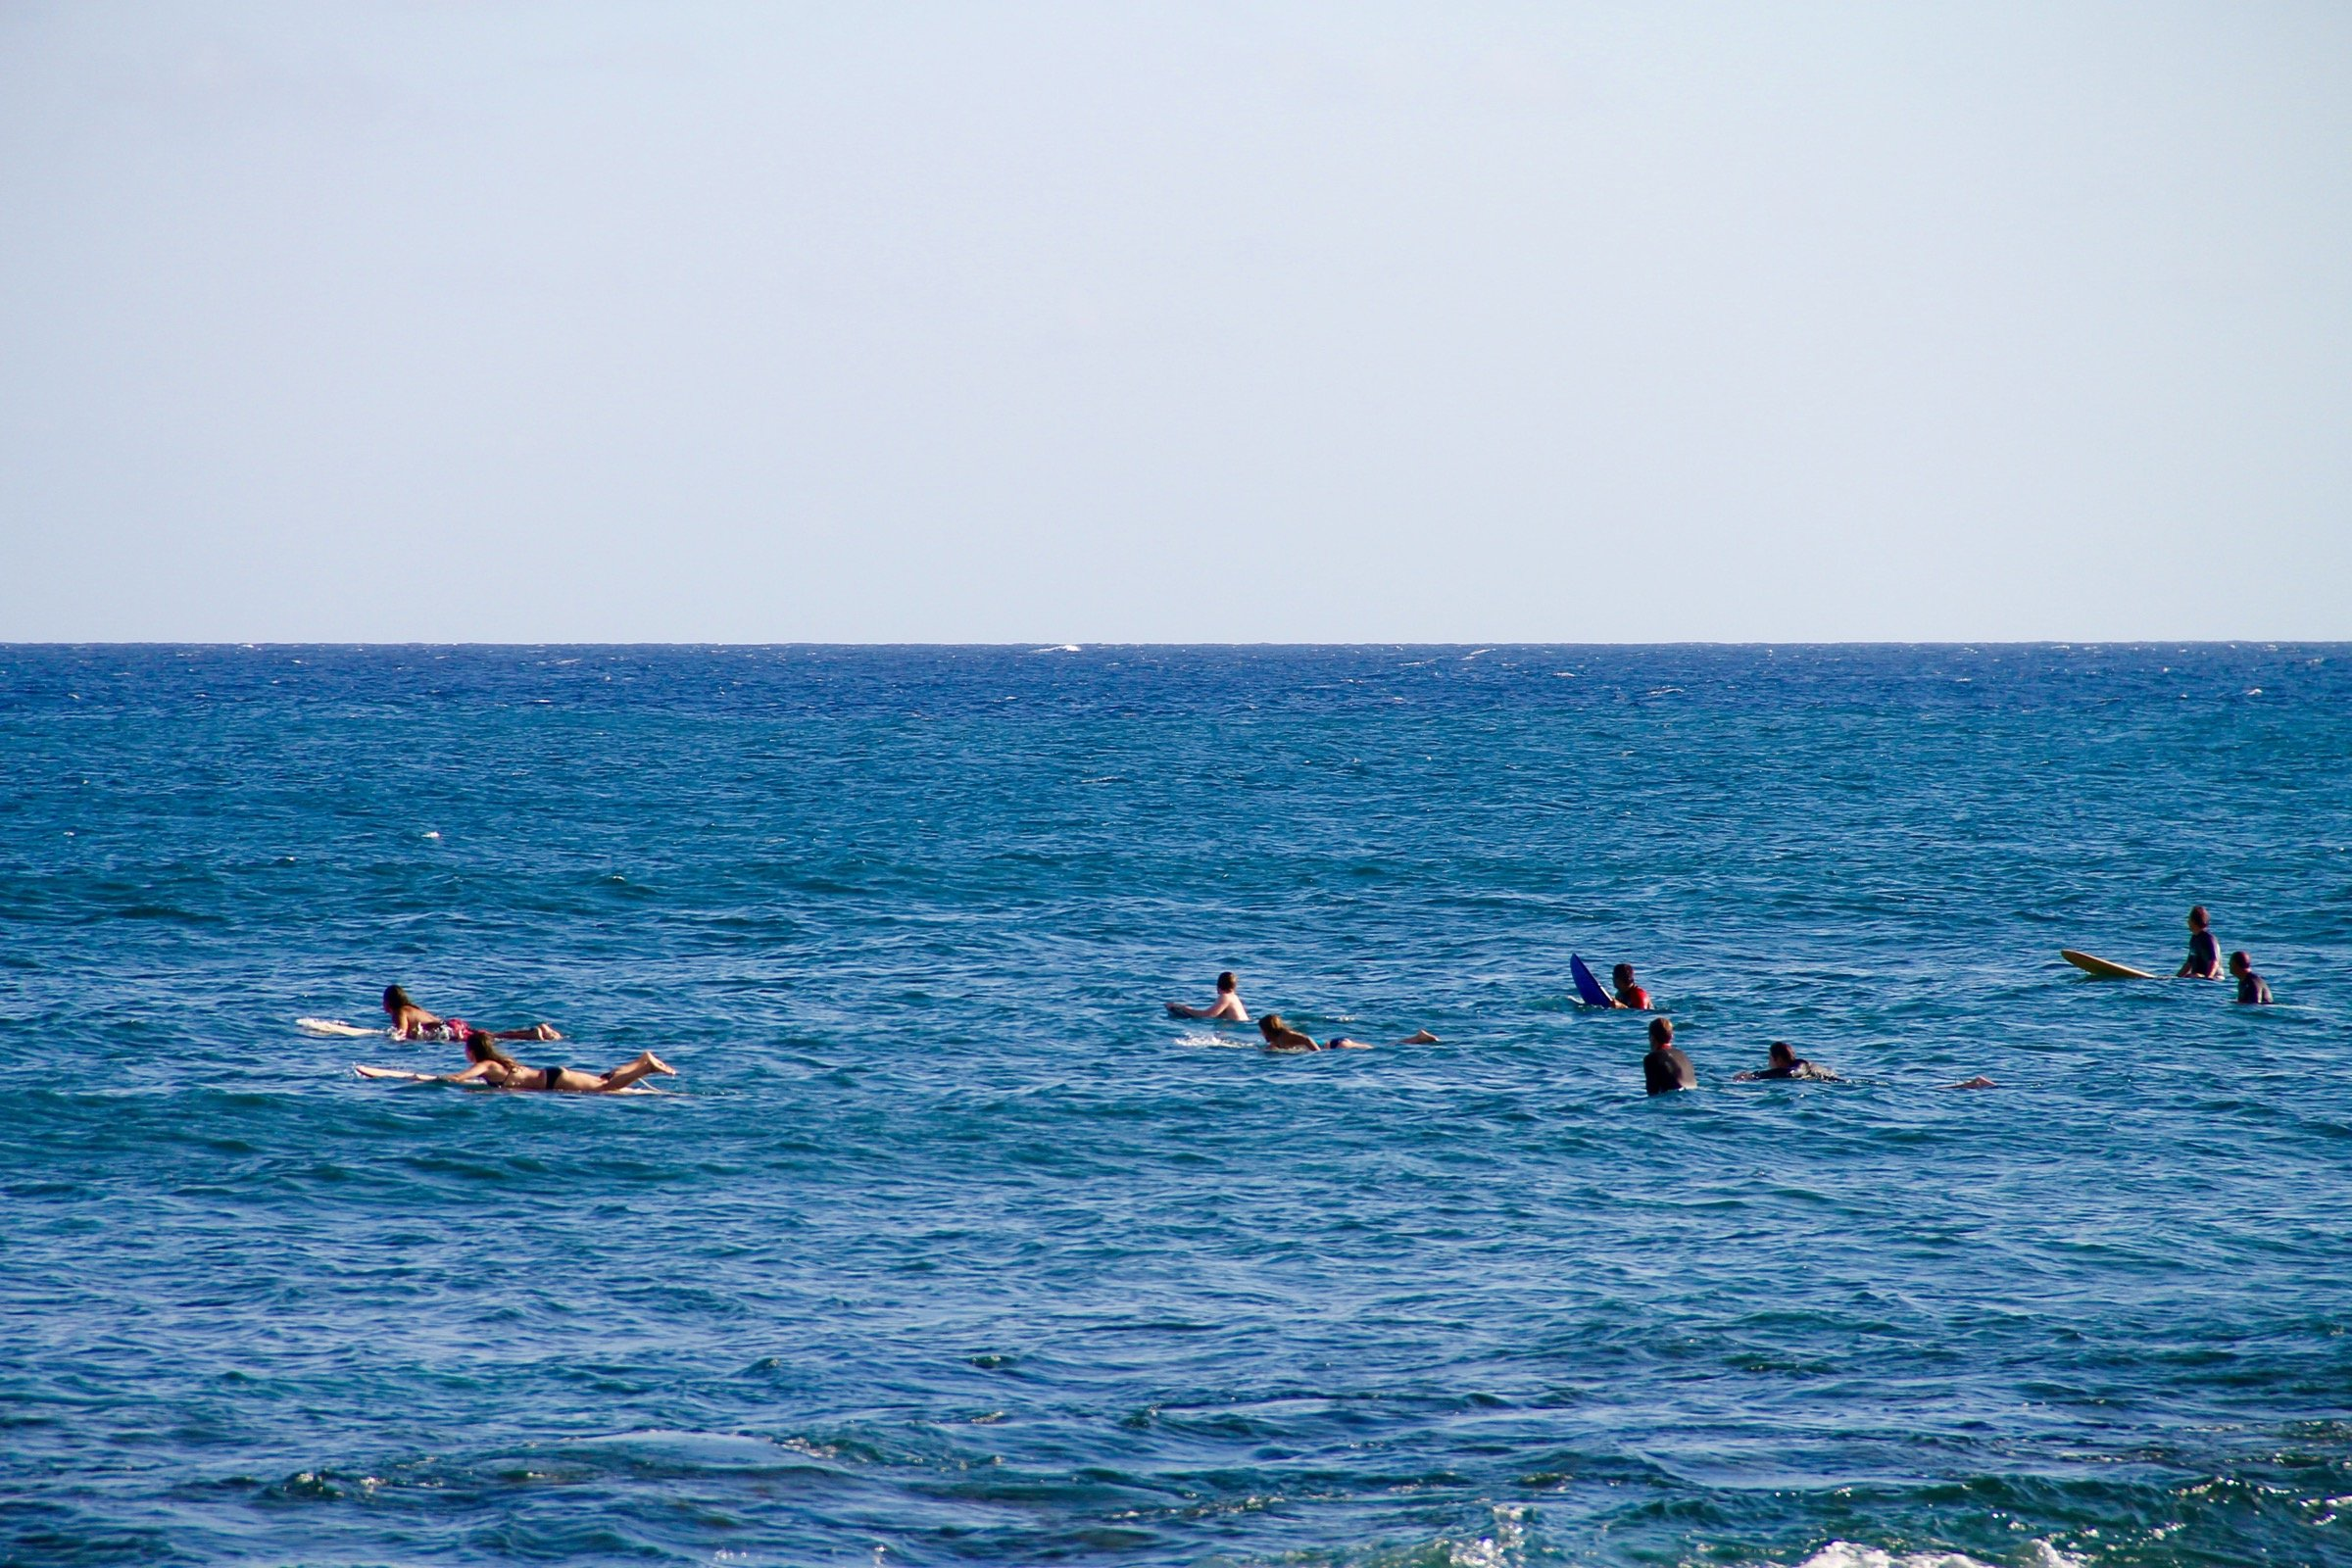 free stock photo of people on surf boards paddling in ocean